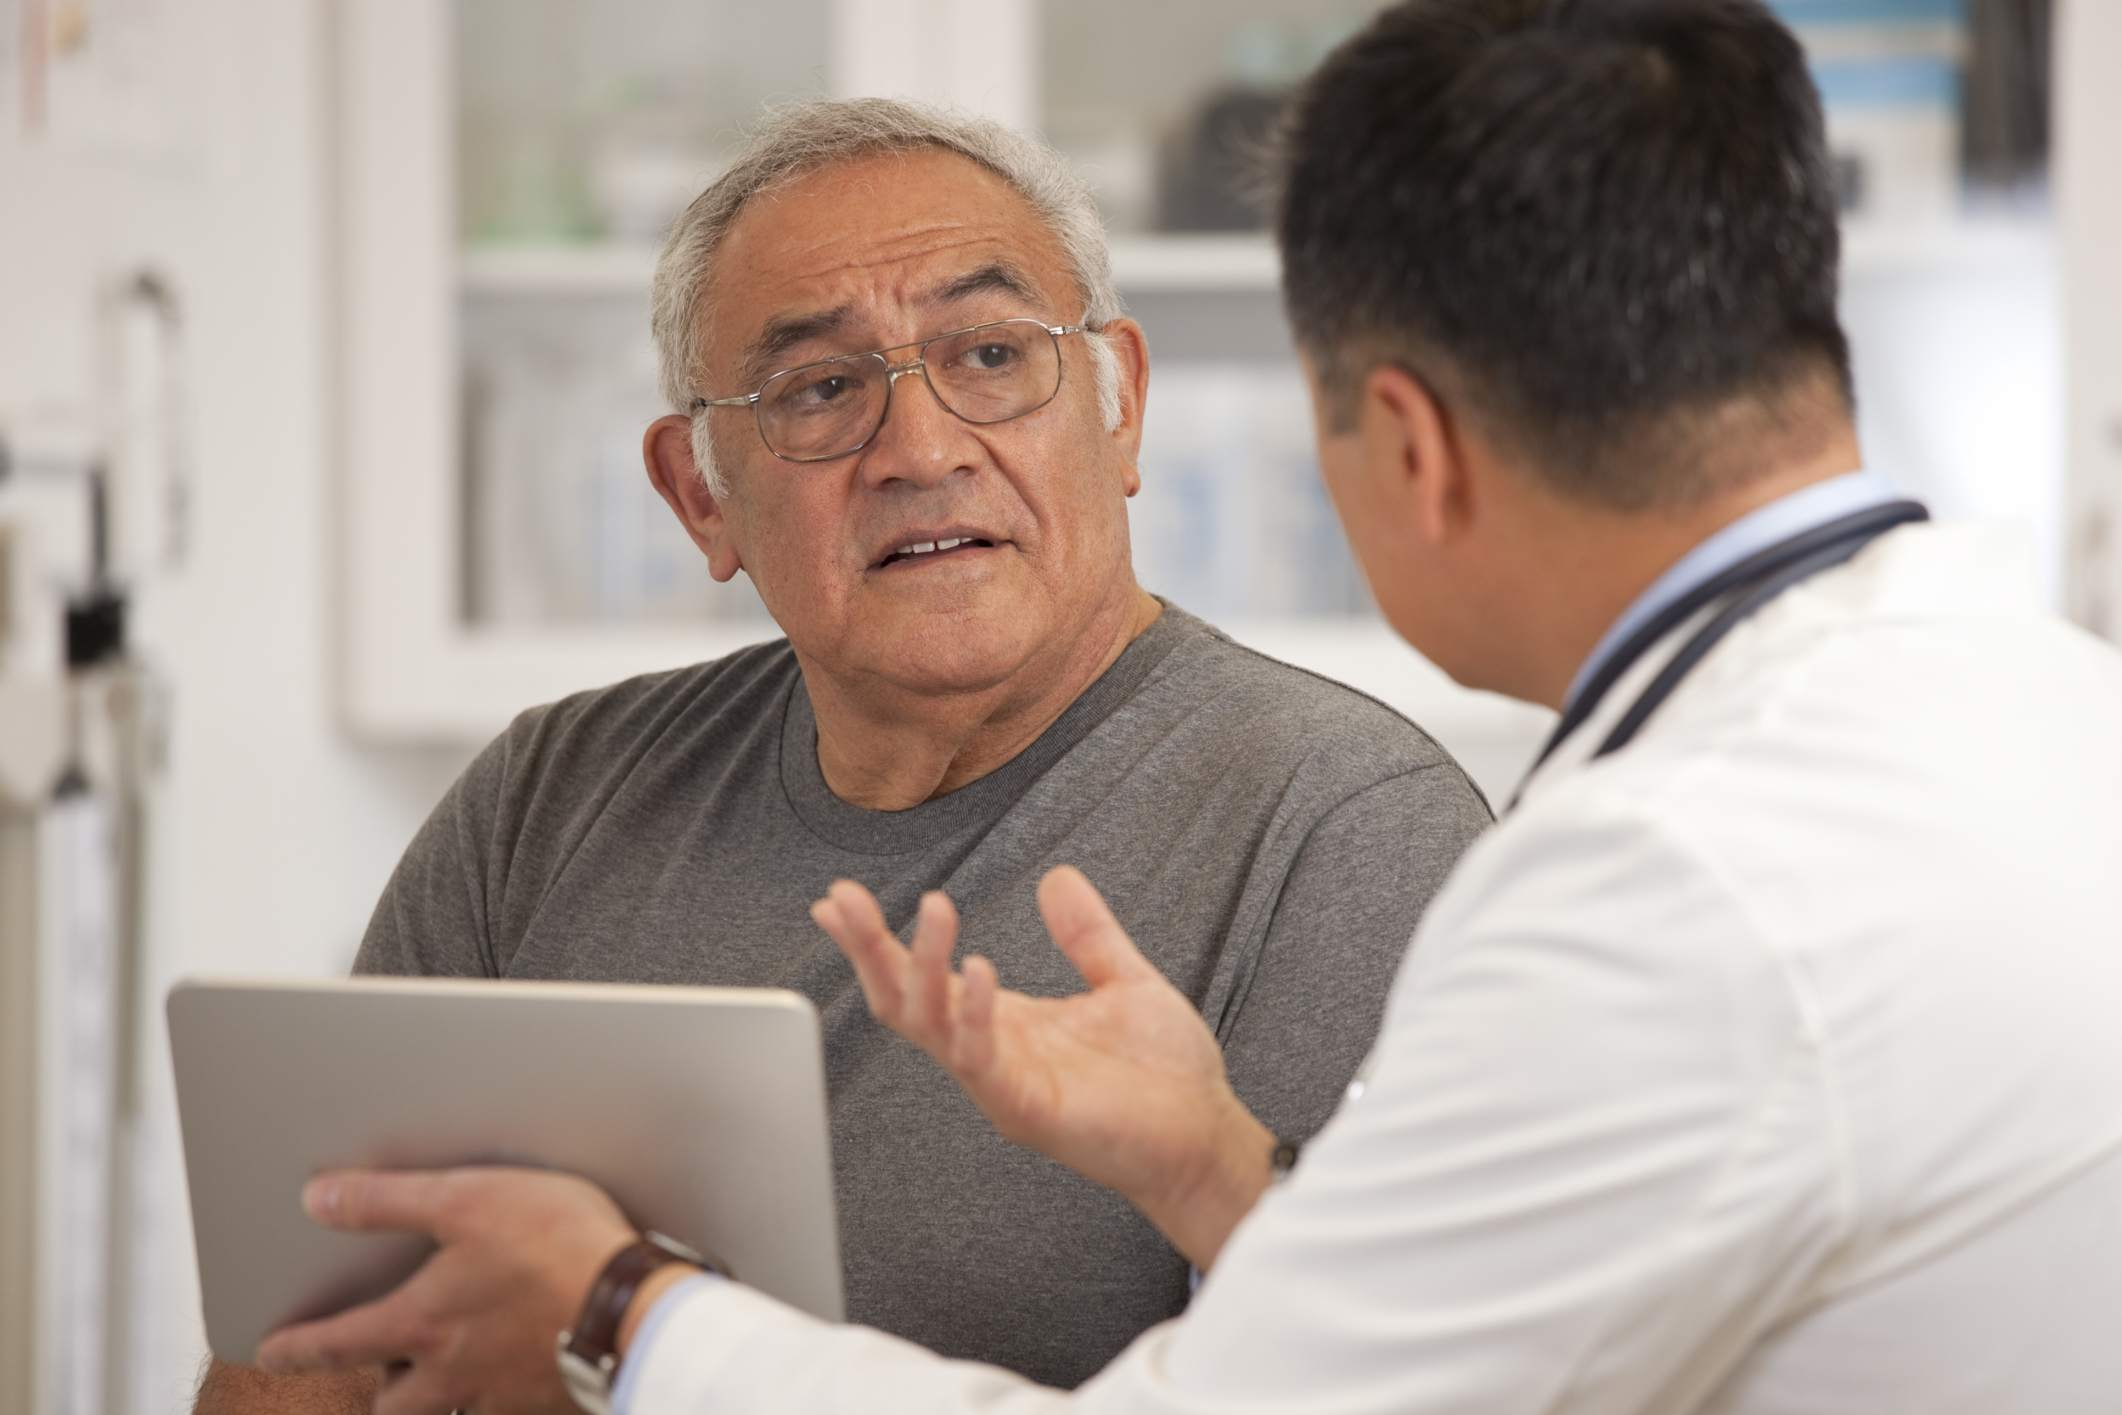 An older man talking to a doctor